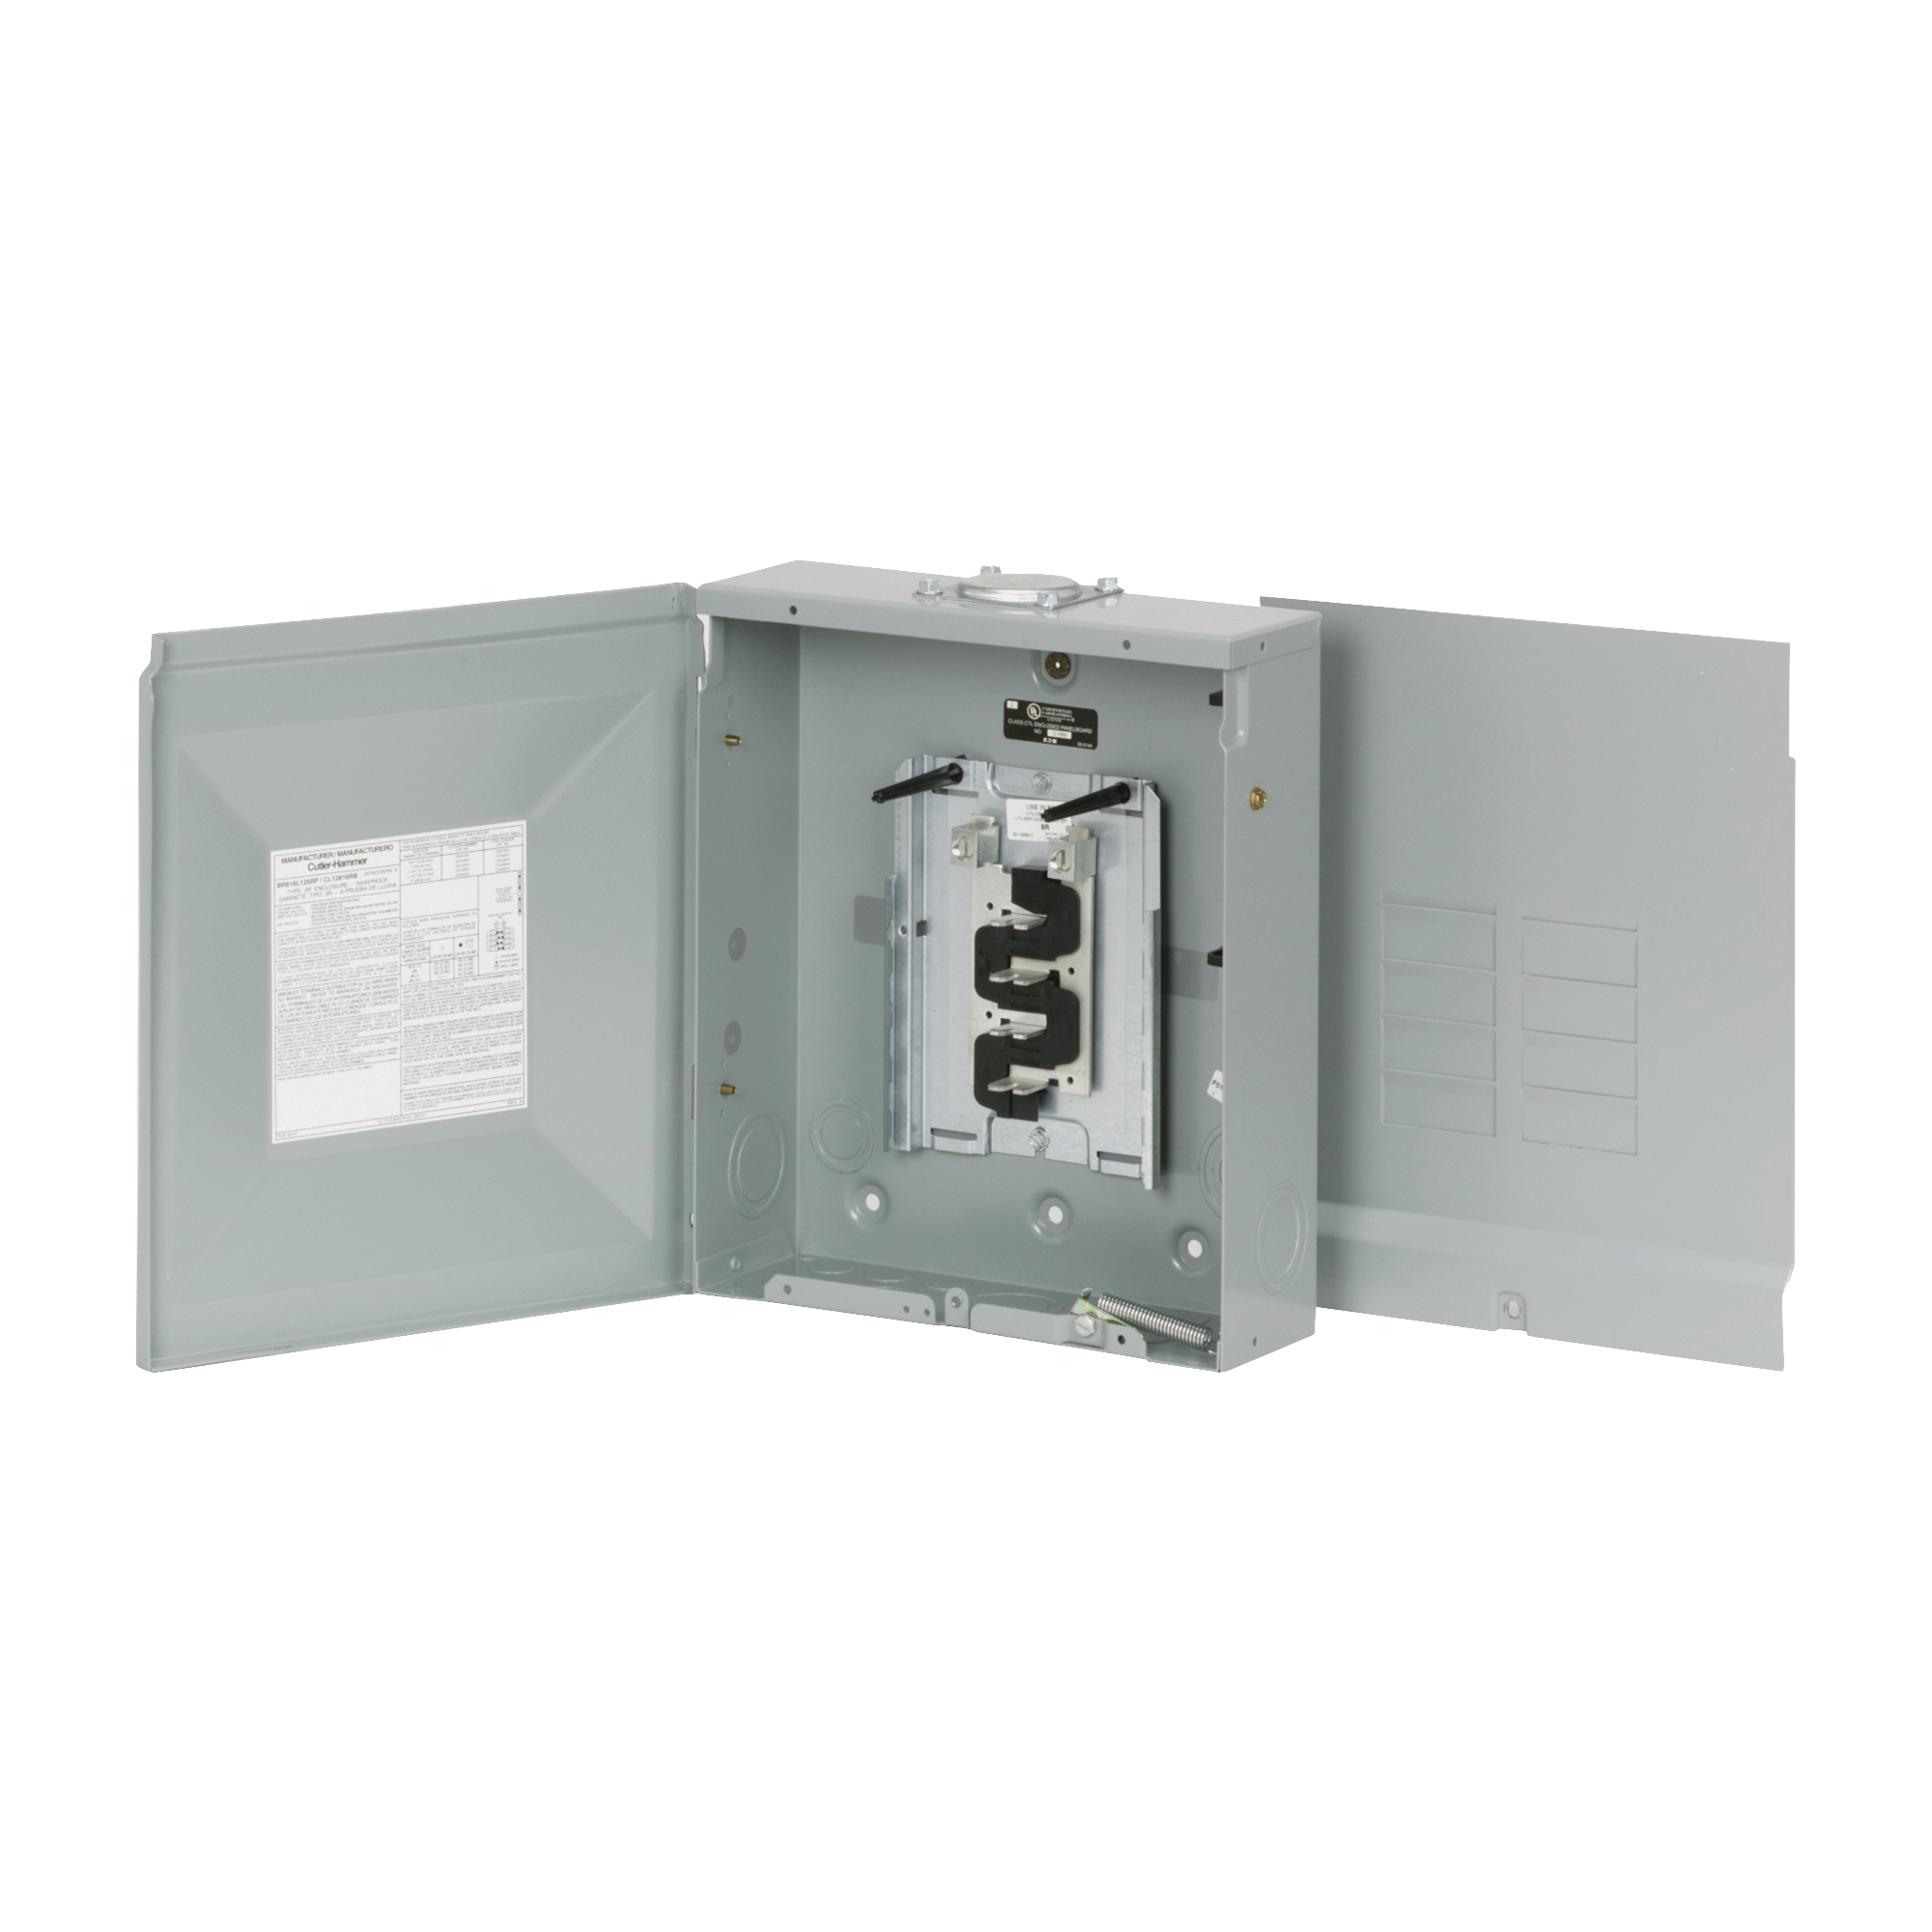 Picture of Cutler-Hammer BR Series BR816L125RP Load Center, 125 A, 8-Space, 16-Circuit, Main Lug, NEMA 3R Enclosure